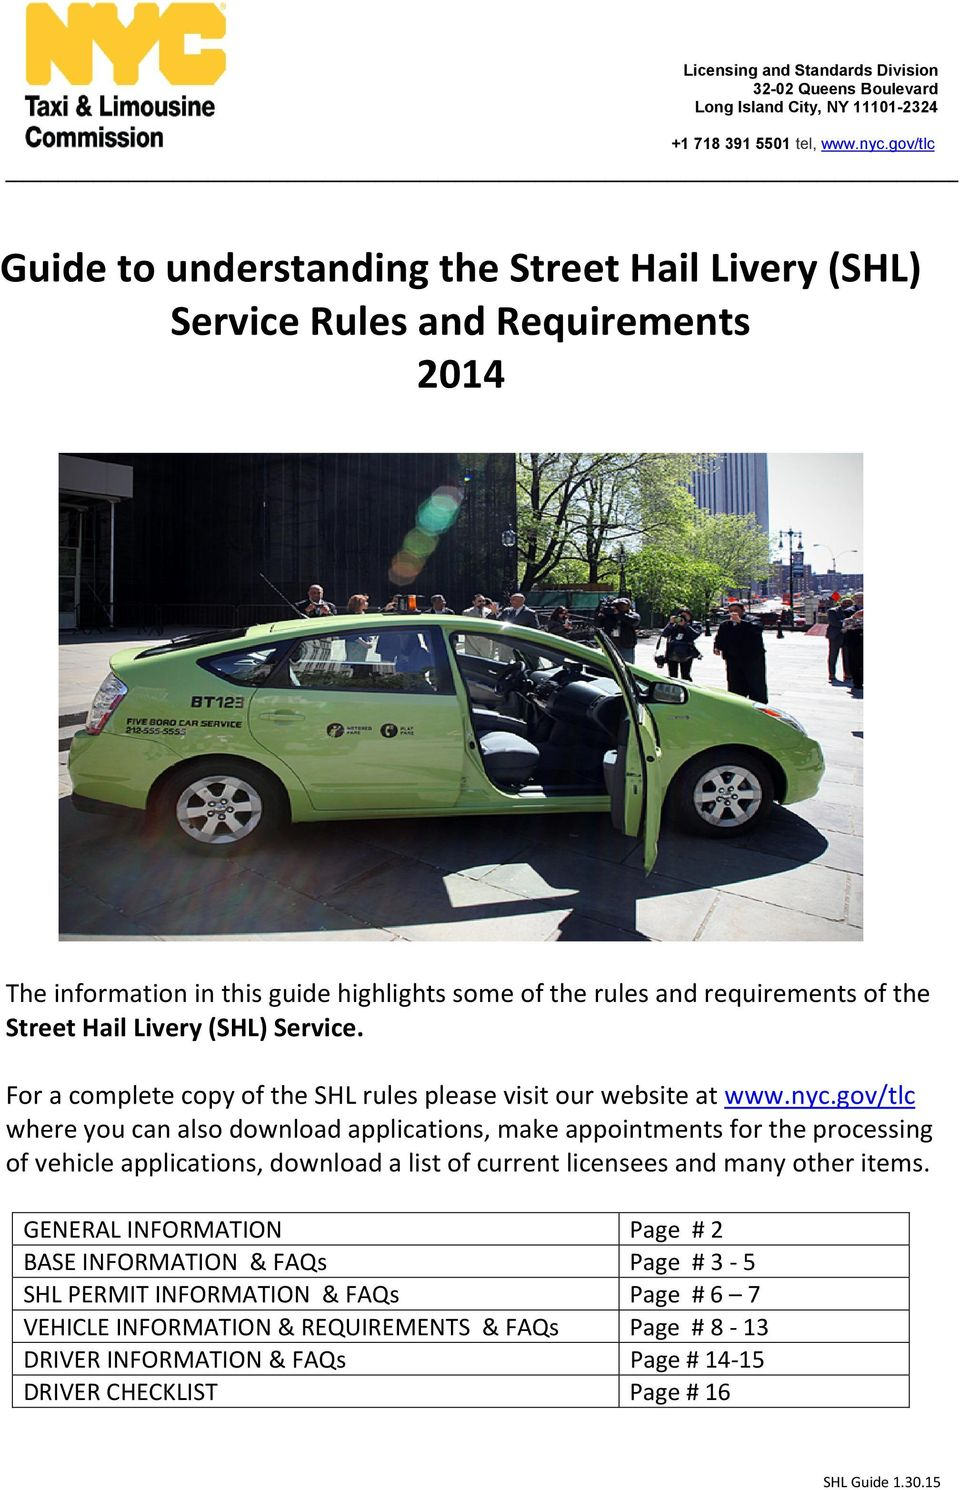 Guide to understanding the Street Hail Livery (SHL) Service Rules